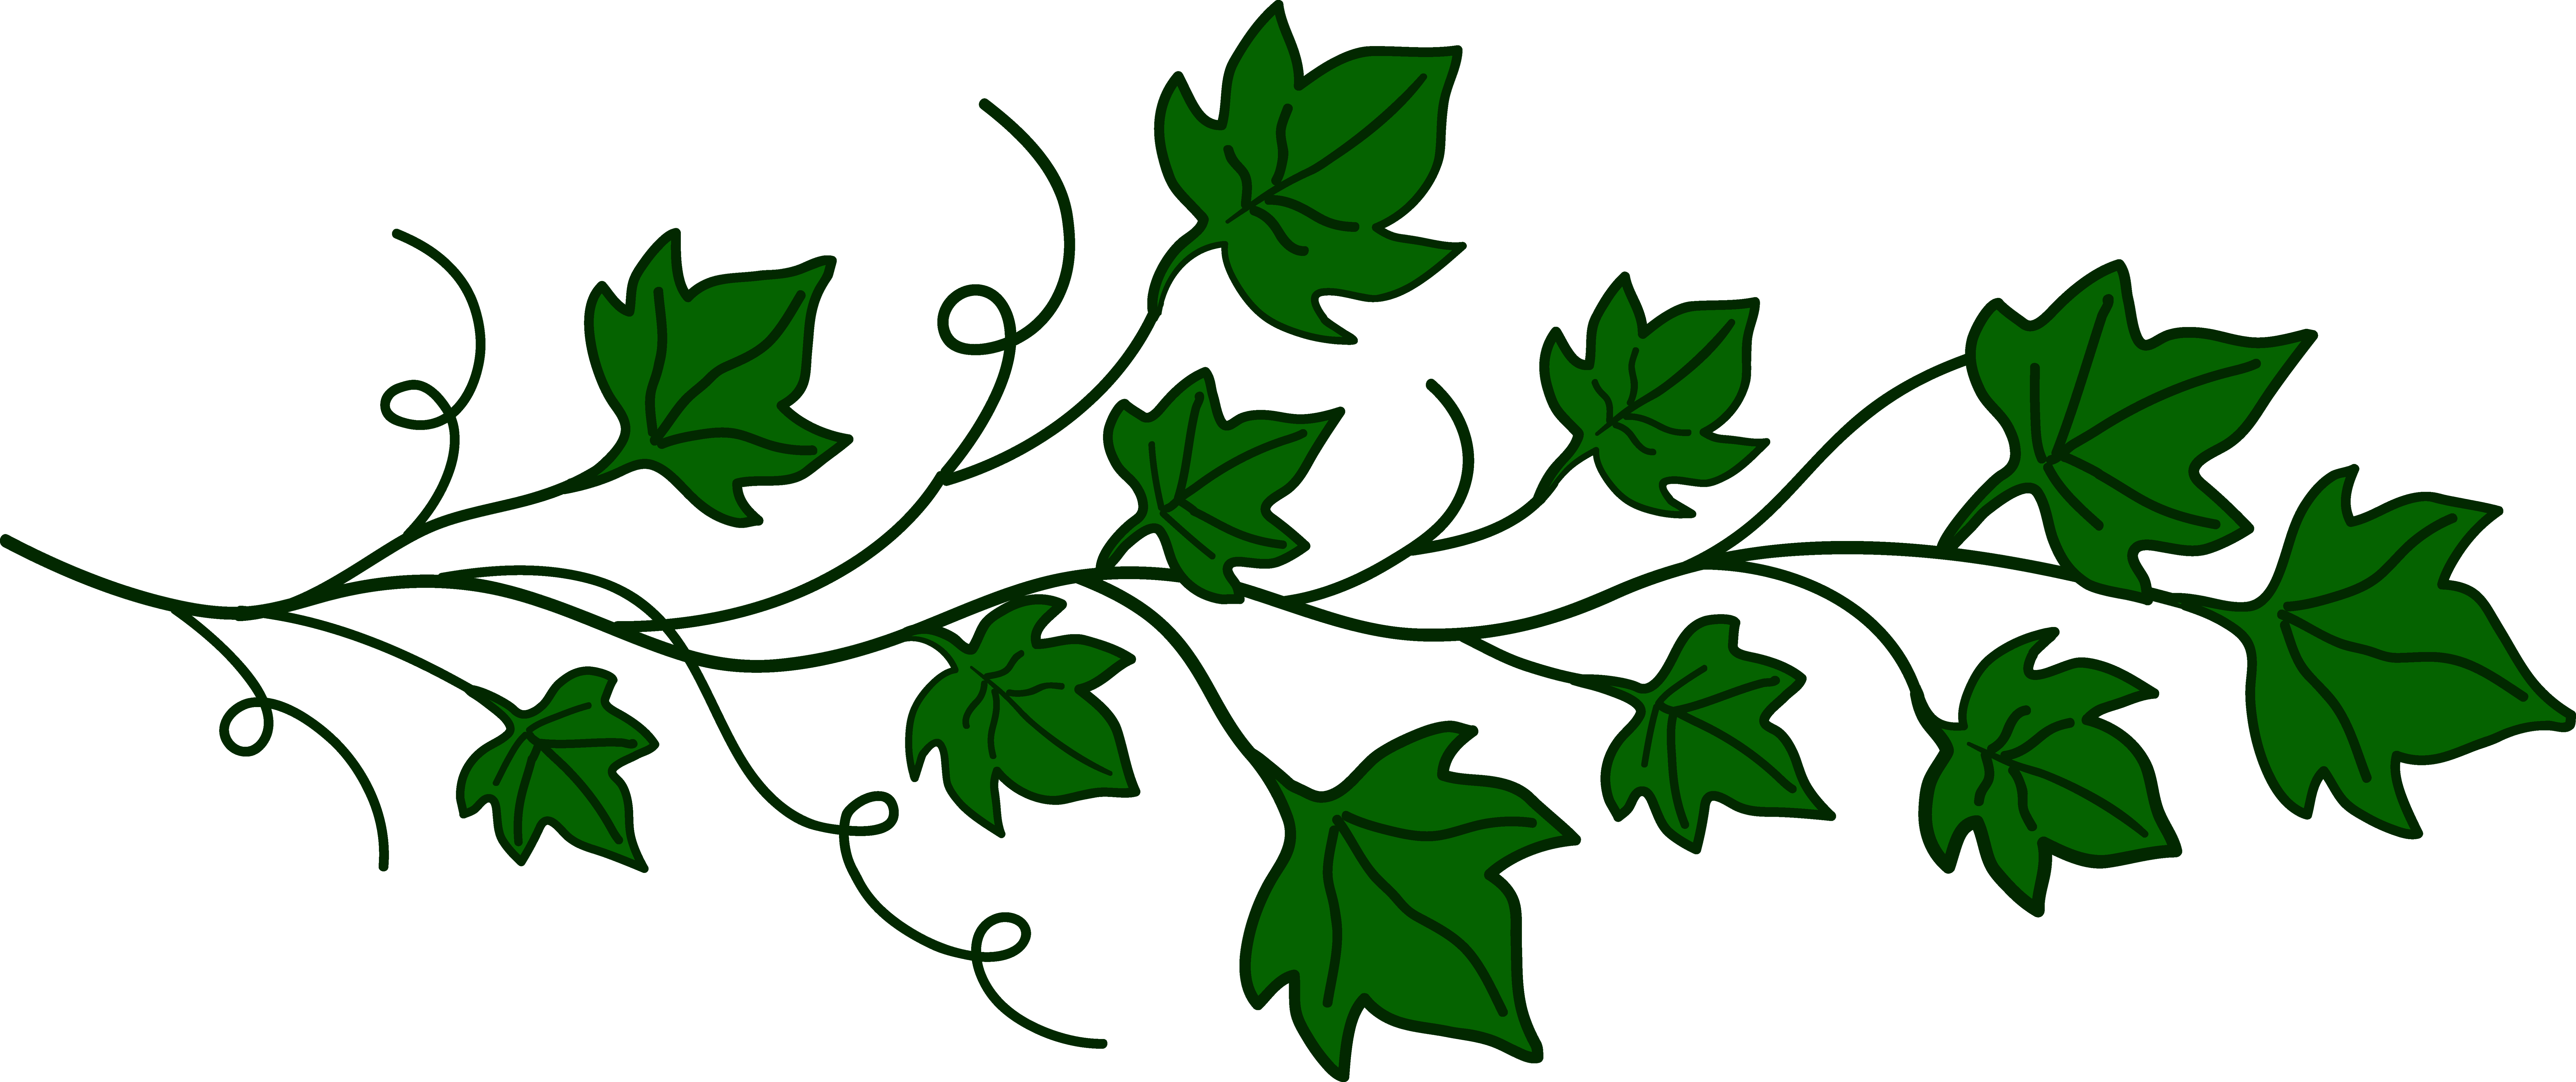 Clipart ivy leaves svg royalty free library Vine of Ivy Leaves - Free Clip Art svg royalty free library